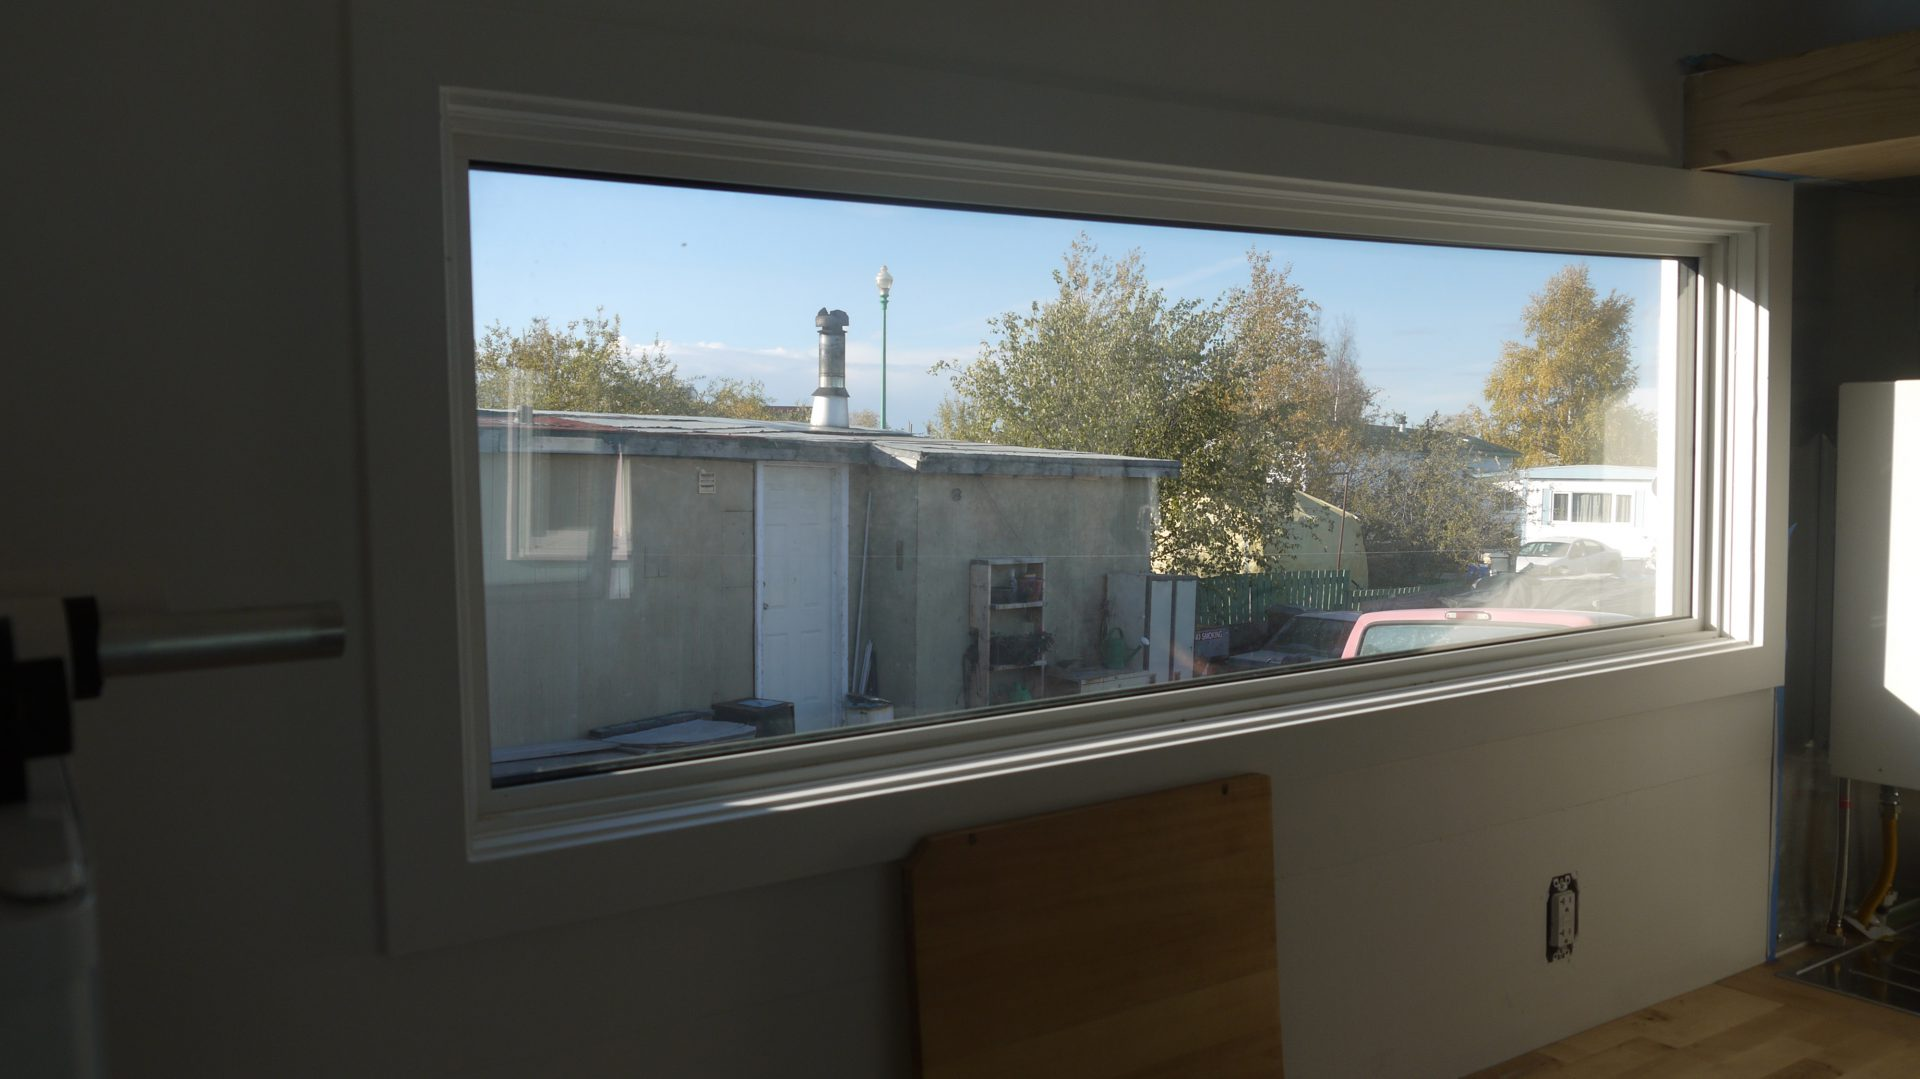 Croteau will have a pretty nice view from his kitchen.